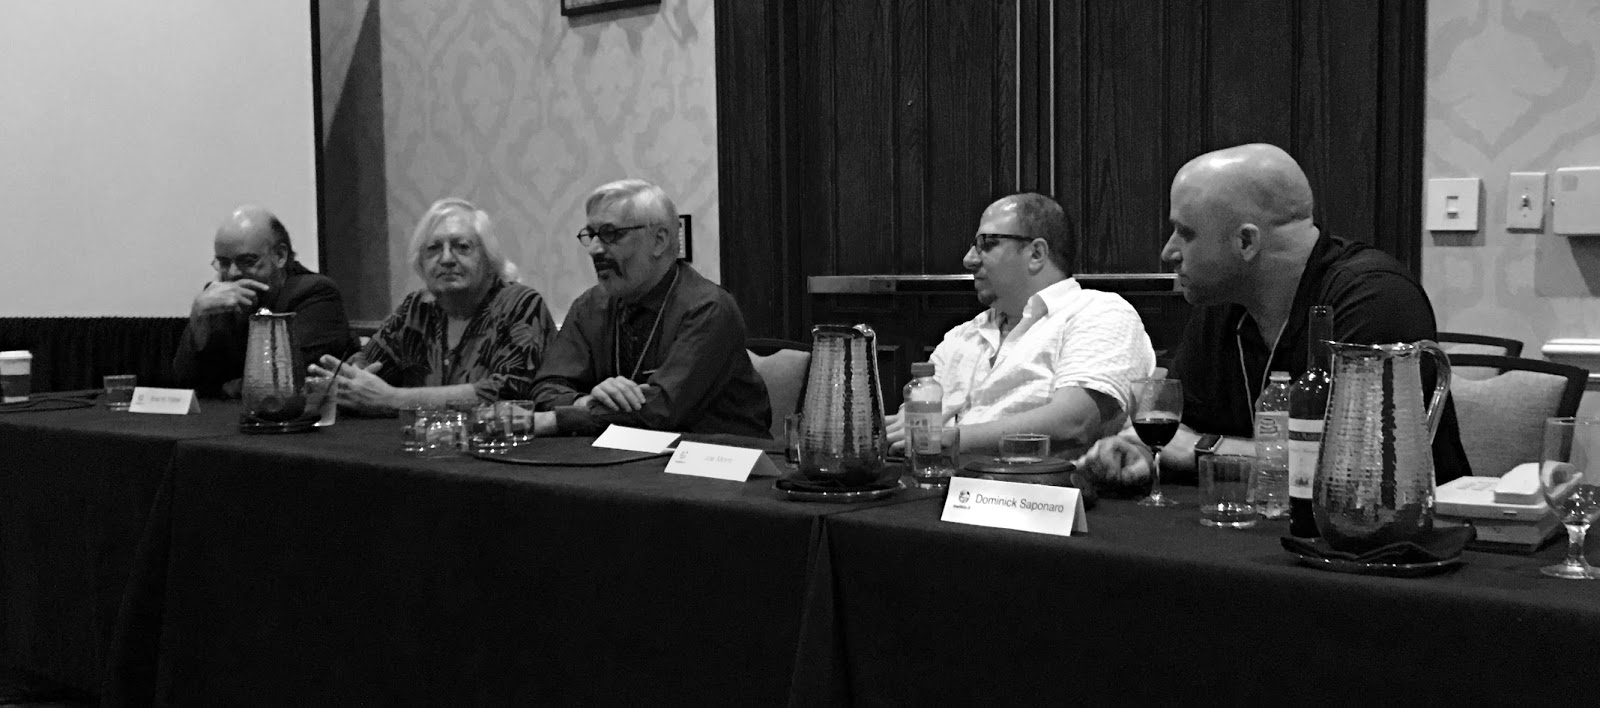 Late night book cover illustration panel. Left to Right: Brad Foster, Willie Siros, Jacob Weisman, Joe Monti, & Dominick Saponaro.